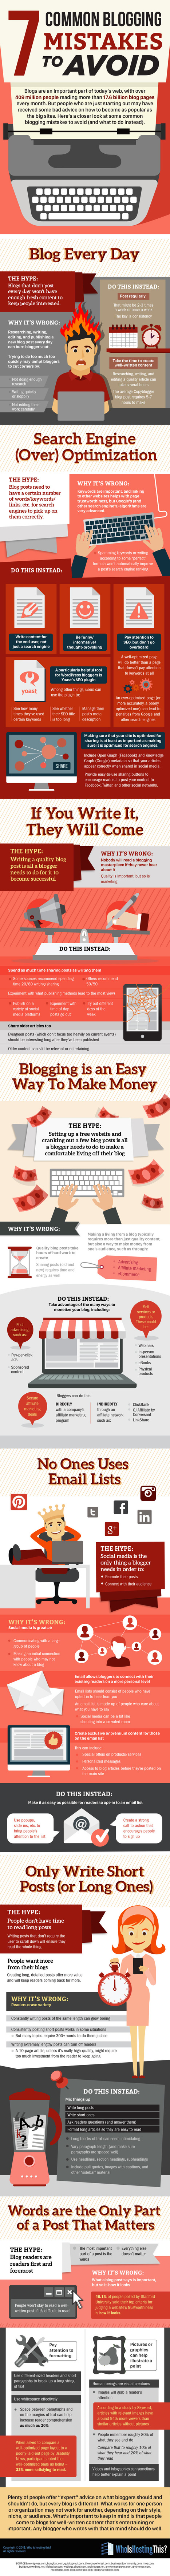 7 Common Blogging Mistakes To Avoid #Infographic | Surviving Social Chaos | Scoop.it